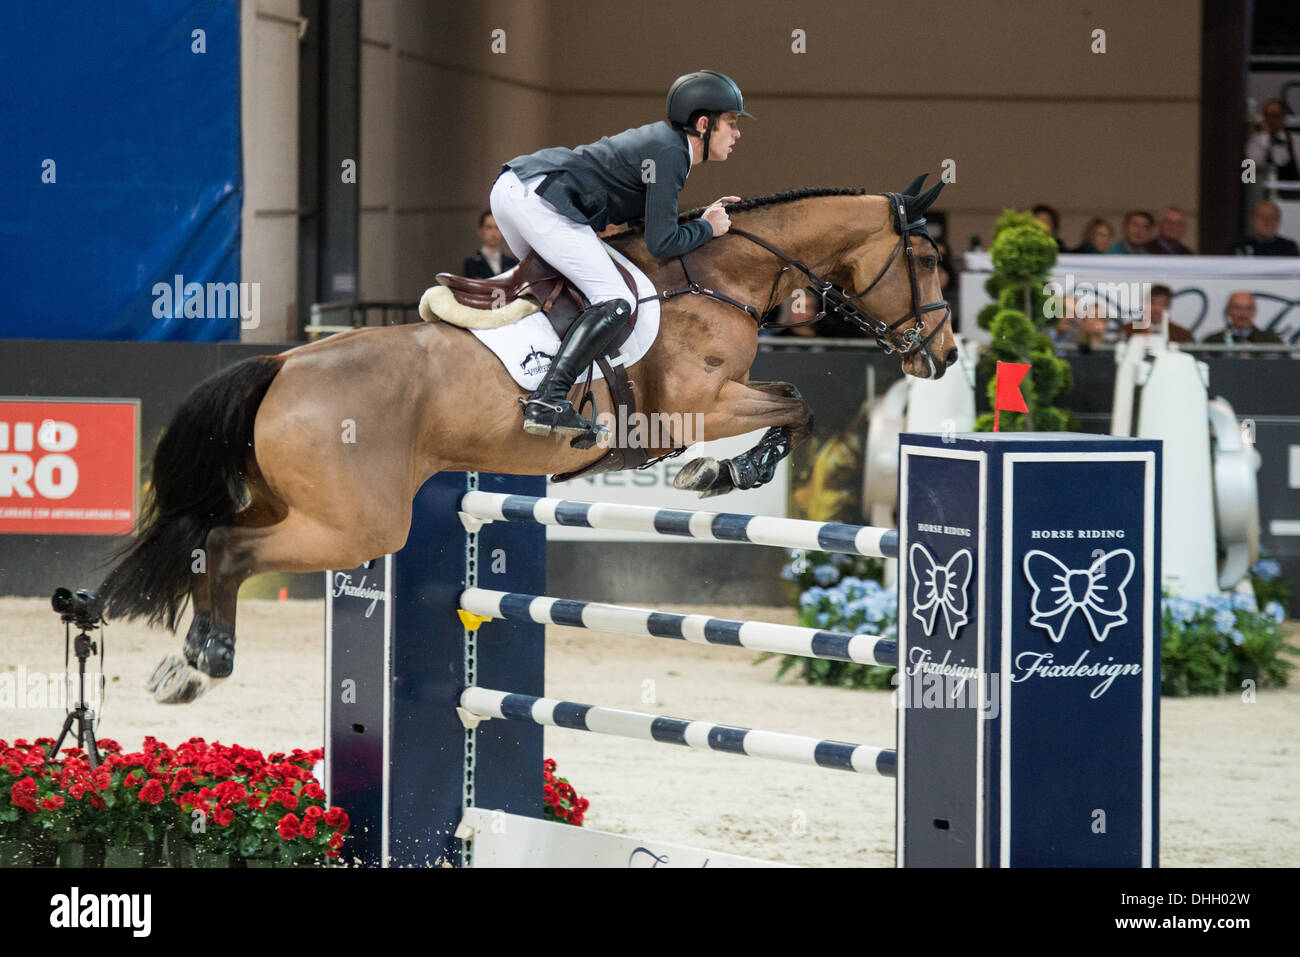 Christian Ahlman wins Longines FEI Worldcup in Verona with Aragon Z Stock Photo